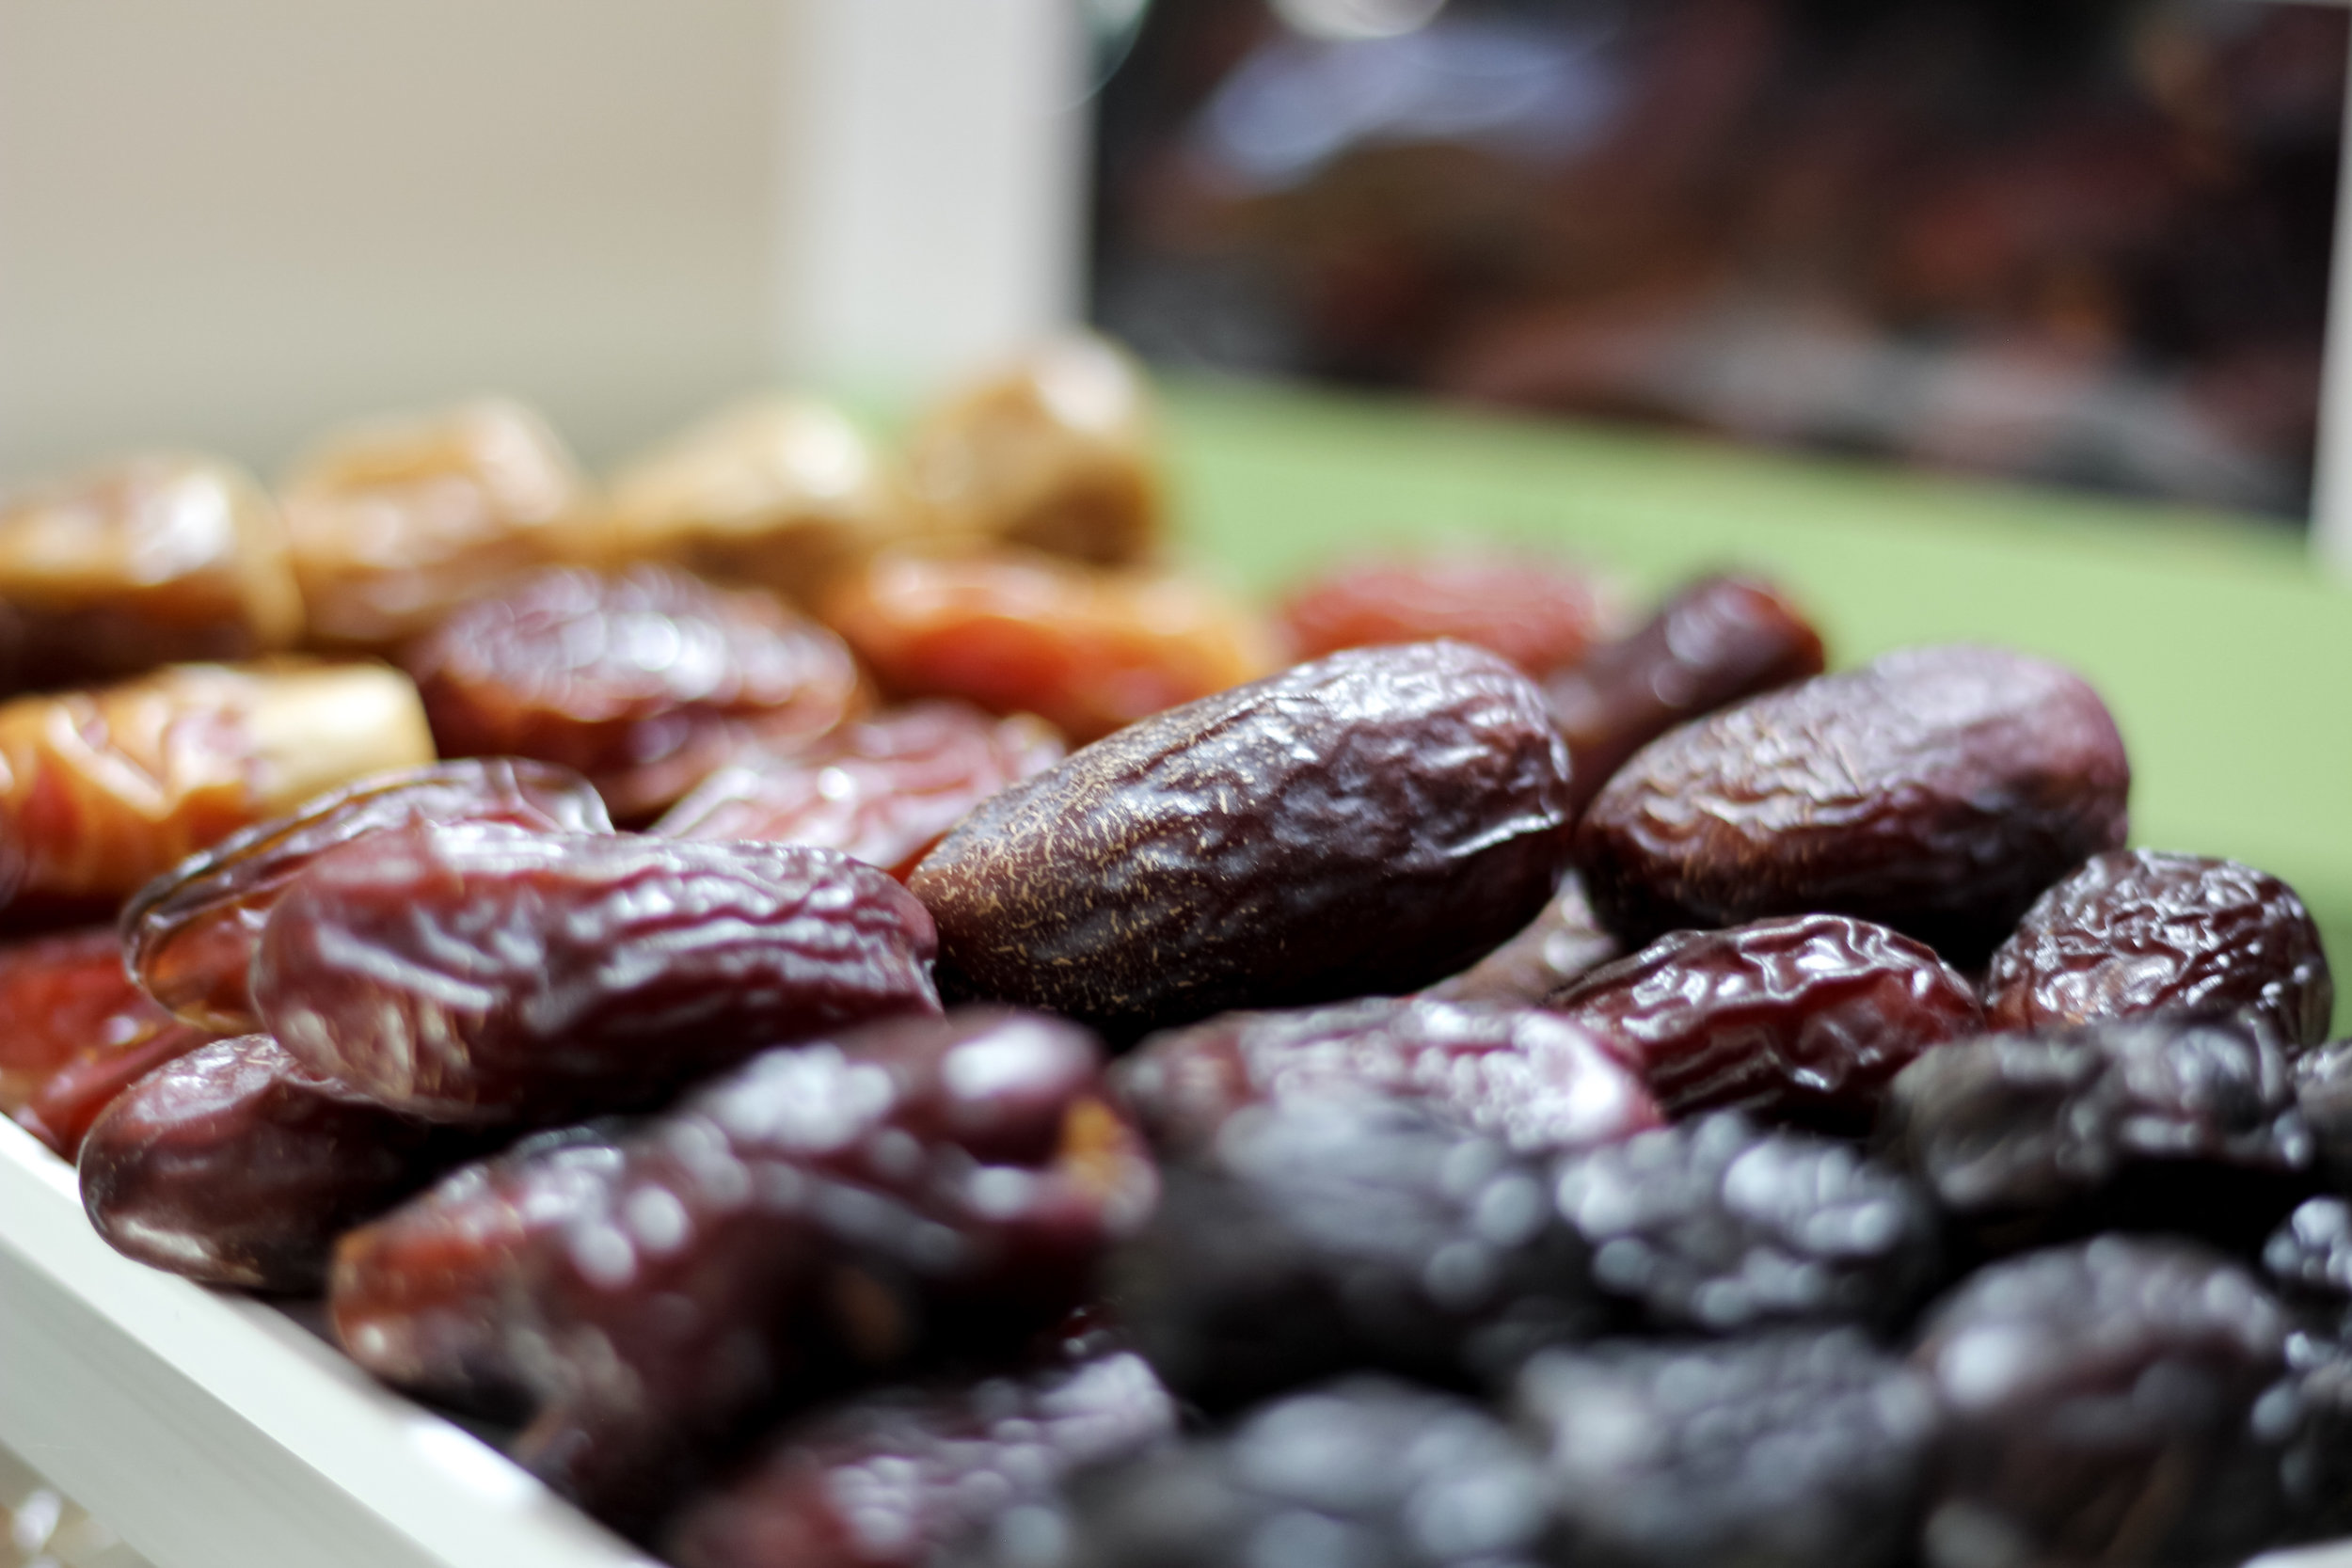 Select from a range of gourmet dates - Our dates are grown across lush farms and carefully selected for the finest taste.